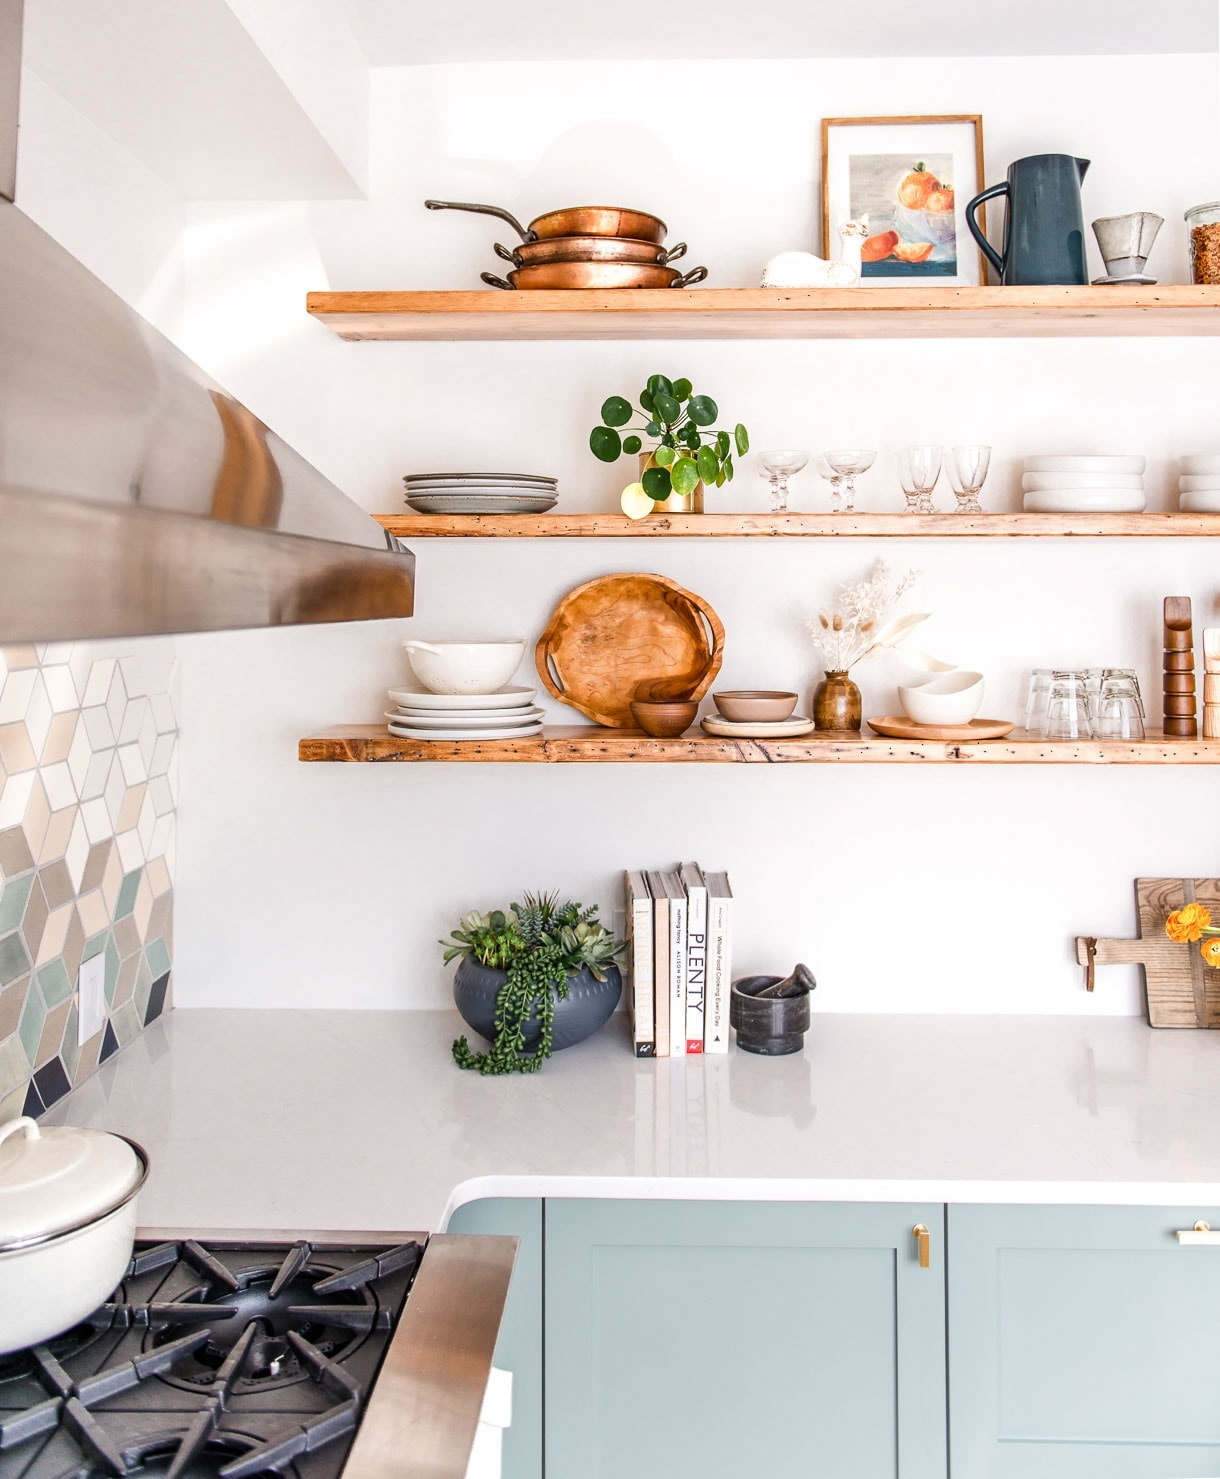 open shelving with ceramics, cookbooks in kitchen, copper cookware